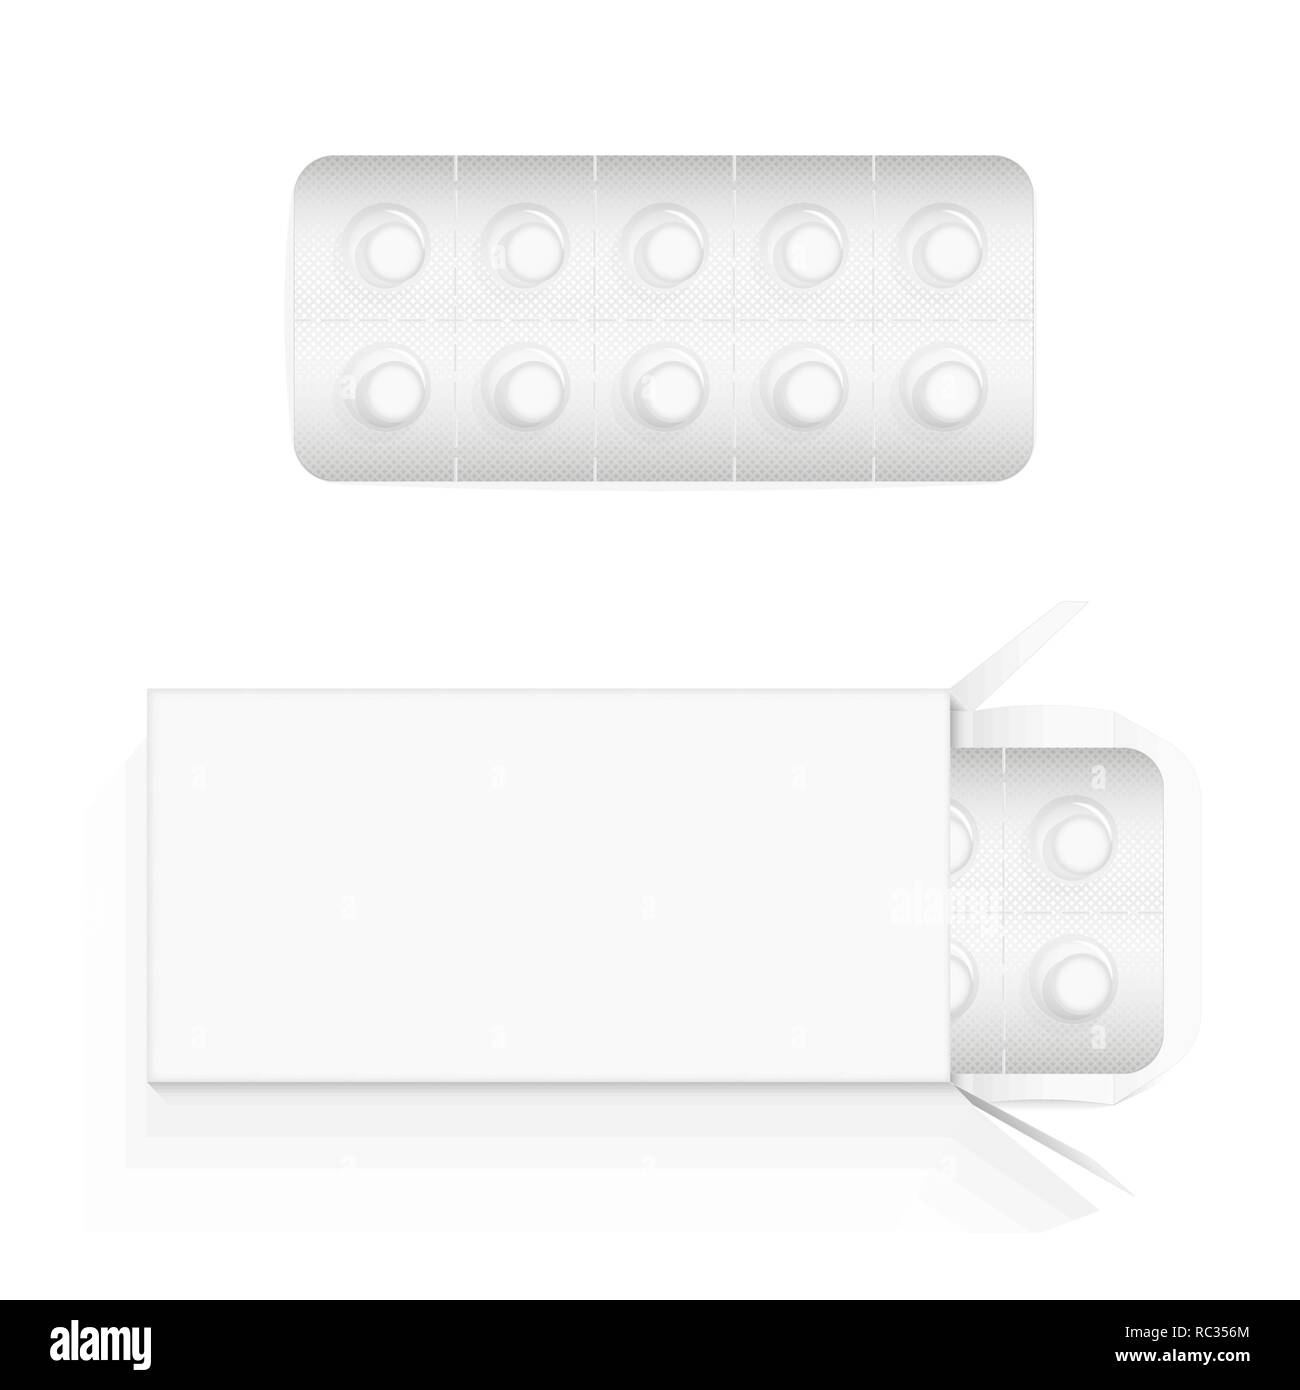 Pharma Vector Vectors Stock Photos & Pharma Vector Vectors Stock